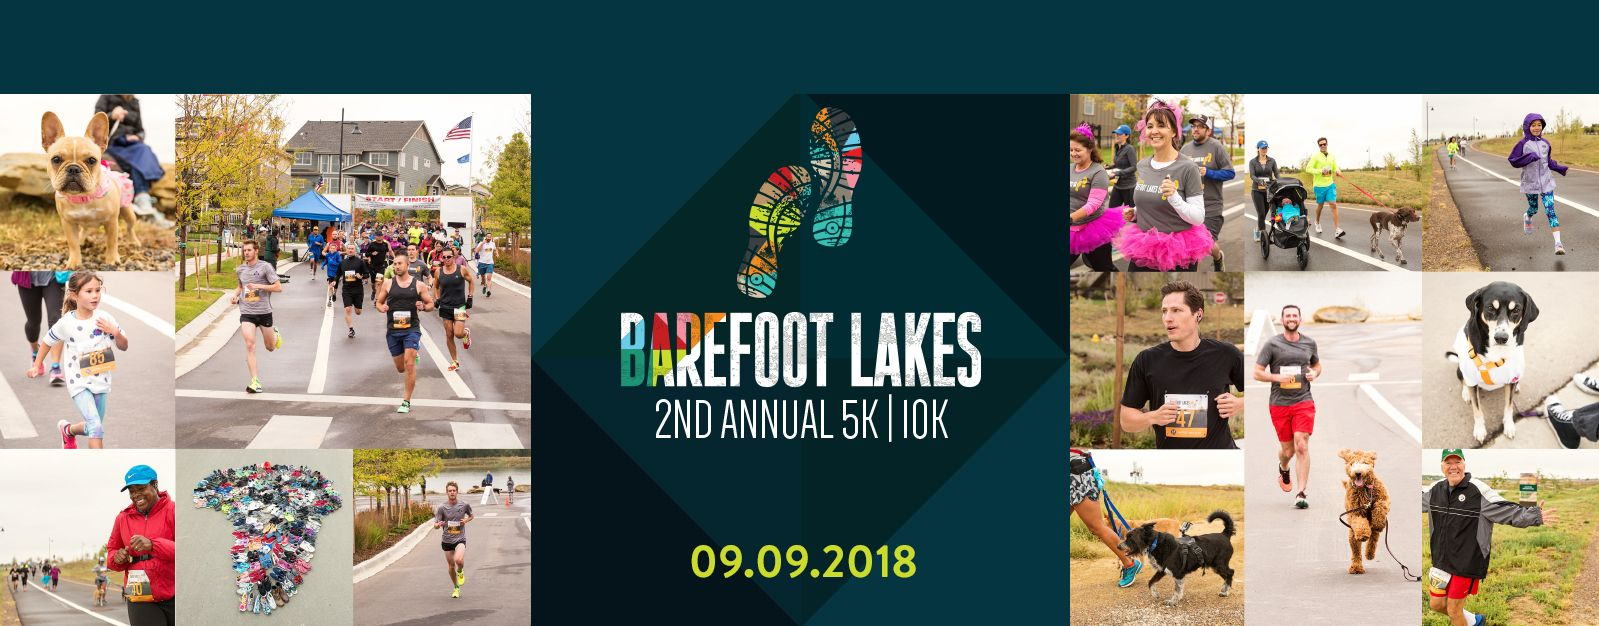 2018-Barefoot-Lakes-5K_Hero-Graphic_vs4-compressor (1)